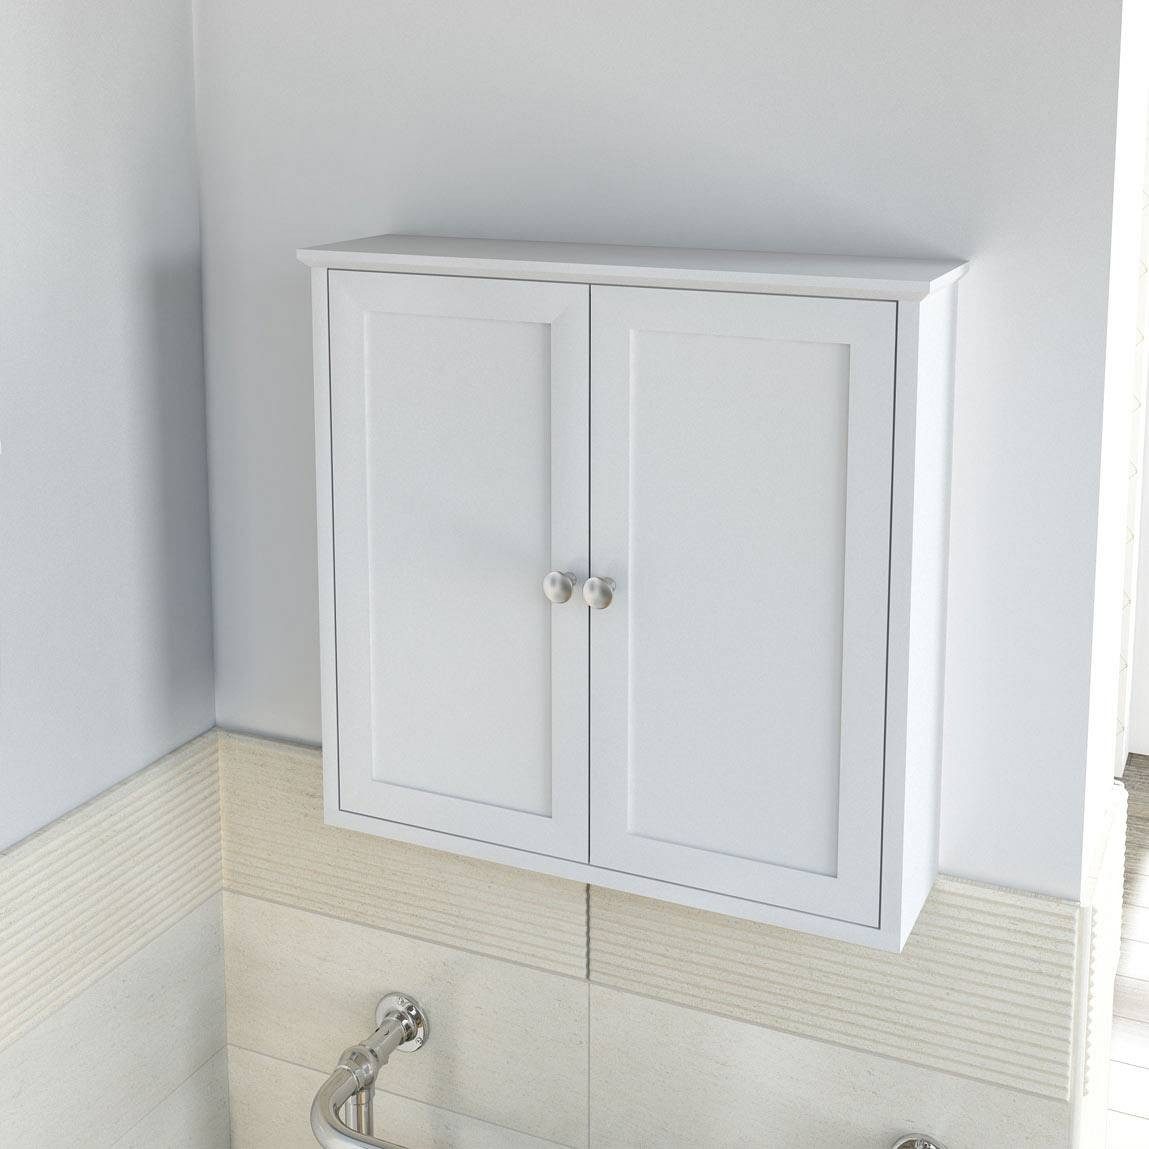 Best ideas about Wall Mounted Bathroom Cabinets . Save or Pin Wall Mounted Bathroom Storage Cabinets Now.